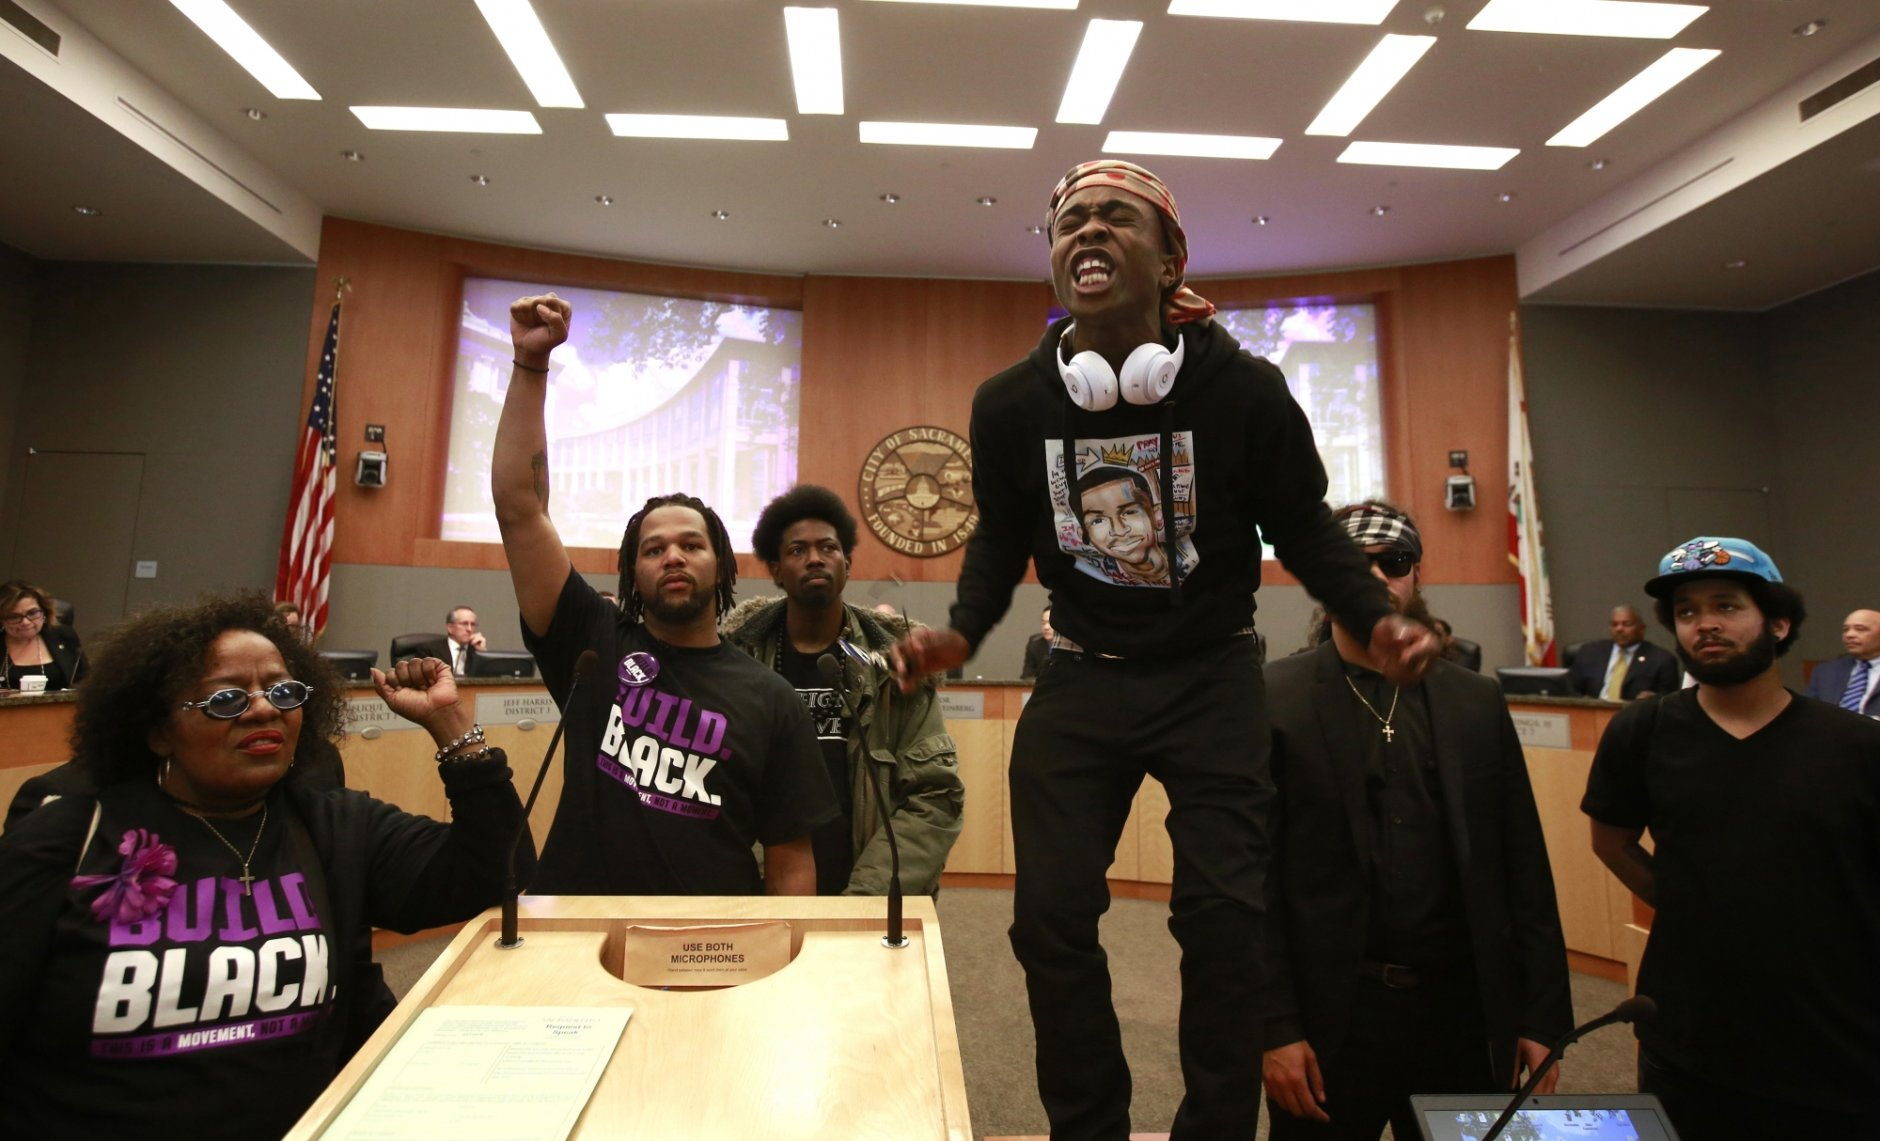 FILE - In this Tuesday, March 27, 2018 file photo, Stevante Clark stands on a desk as he shouts the name of his brother Stephon Clark, who was fatally shot by police a week earlier, during a meeting of the Sacramento City Council in Sacramento, Calif. Prosecutors are expected to announce Saturday, March 1 whether two police officers will face charges in last year's fatal shooting in Sacramento of an unarmed black man that generated nationwide protests. (AP Photo/Rich Pedroncelli, File)